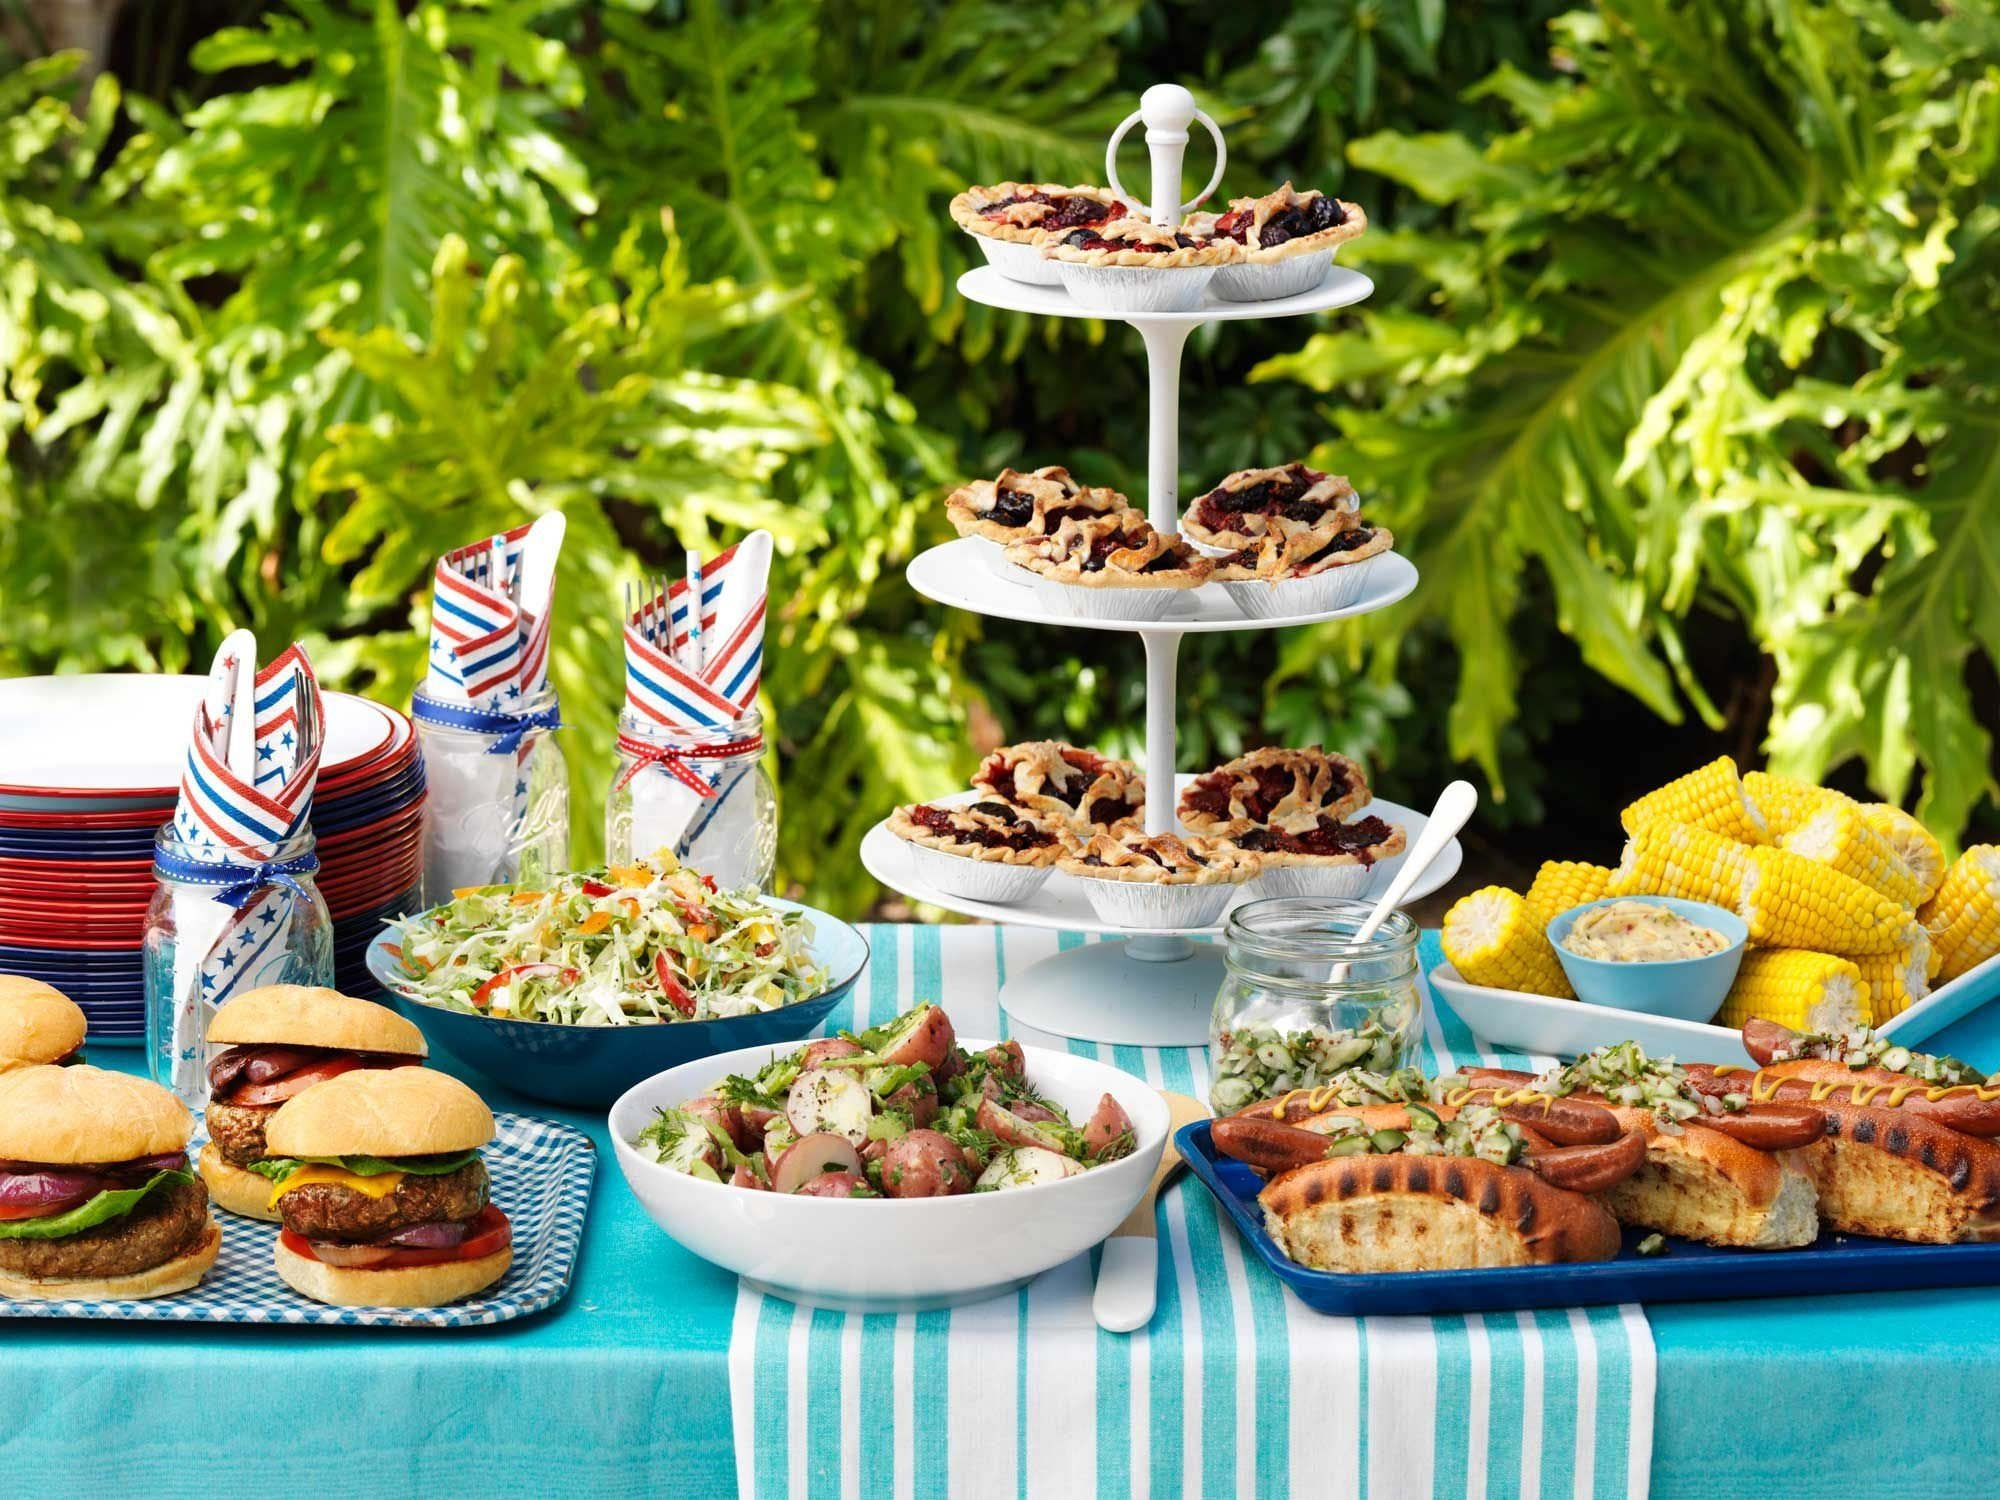 10 Unique 4Th Of July Cookout Ideas 24 4th of july party ideas food decor for a fourth of july cookout 9 2020